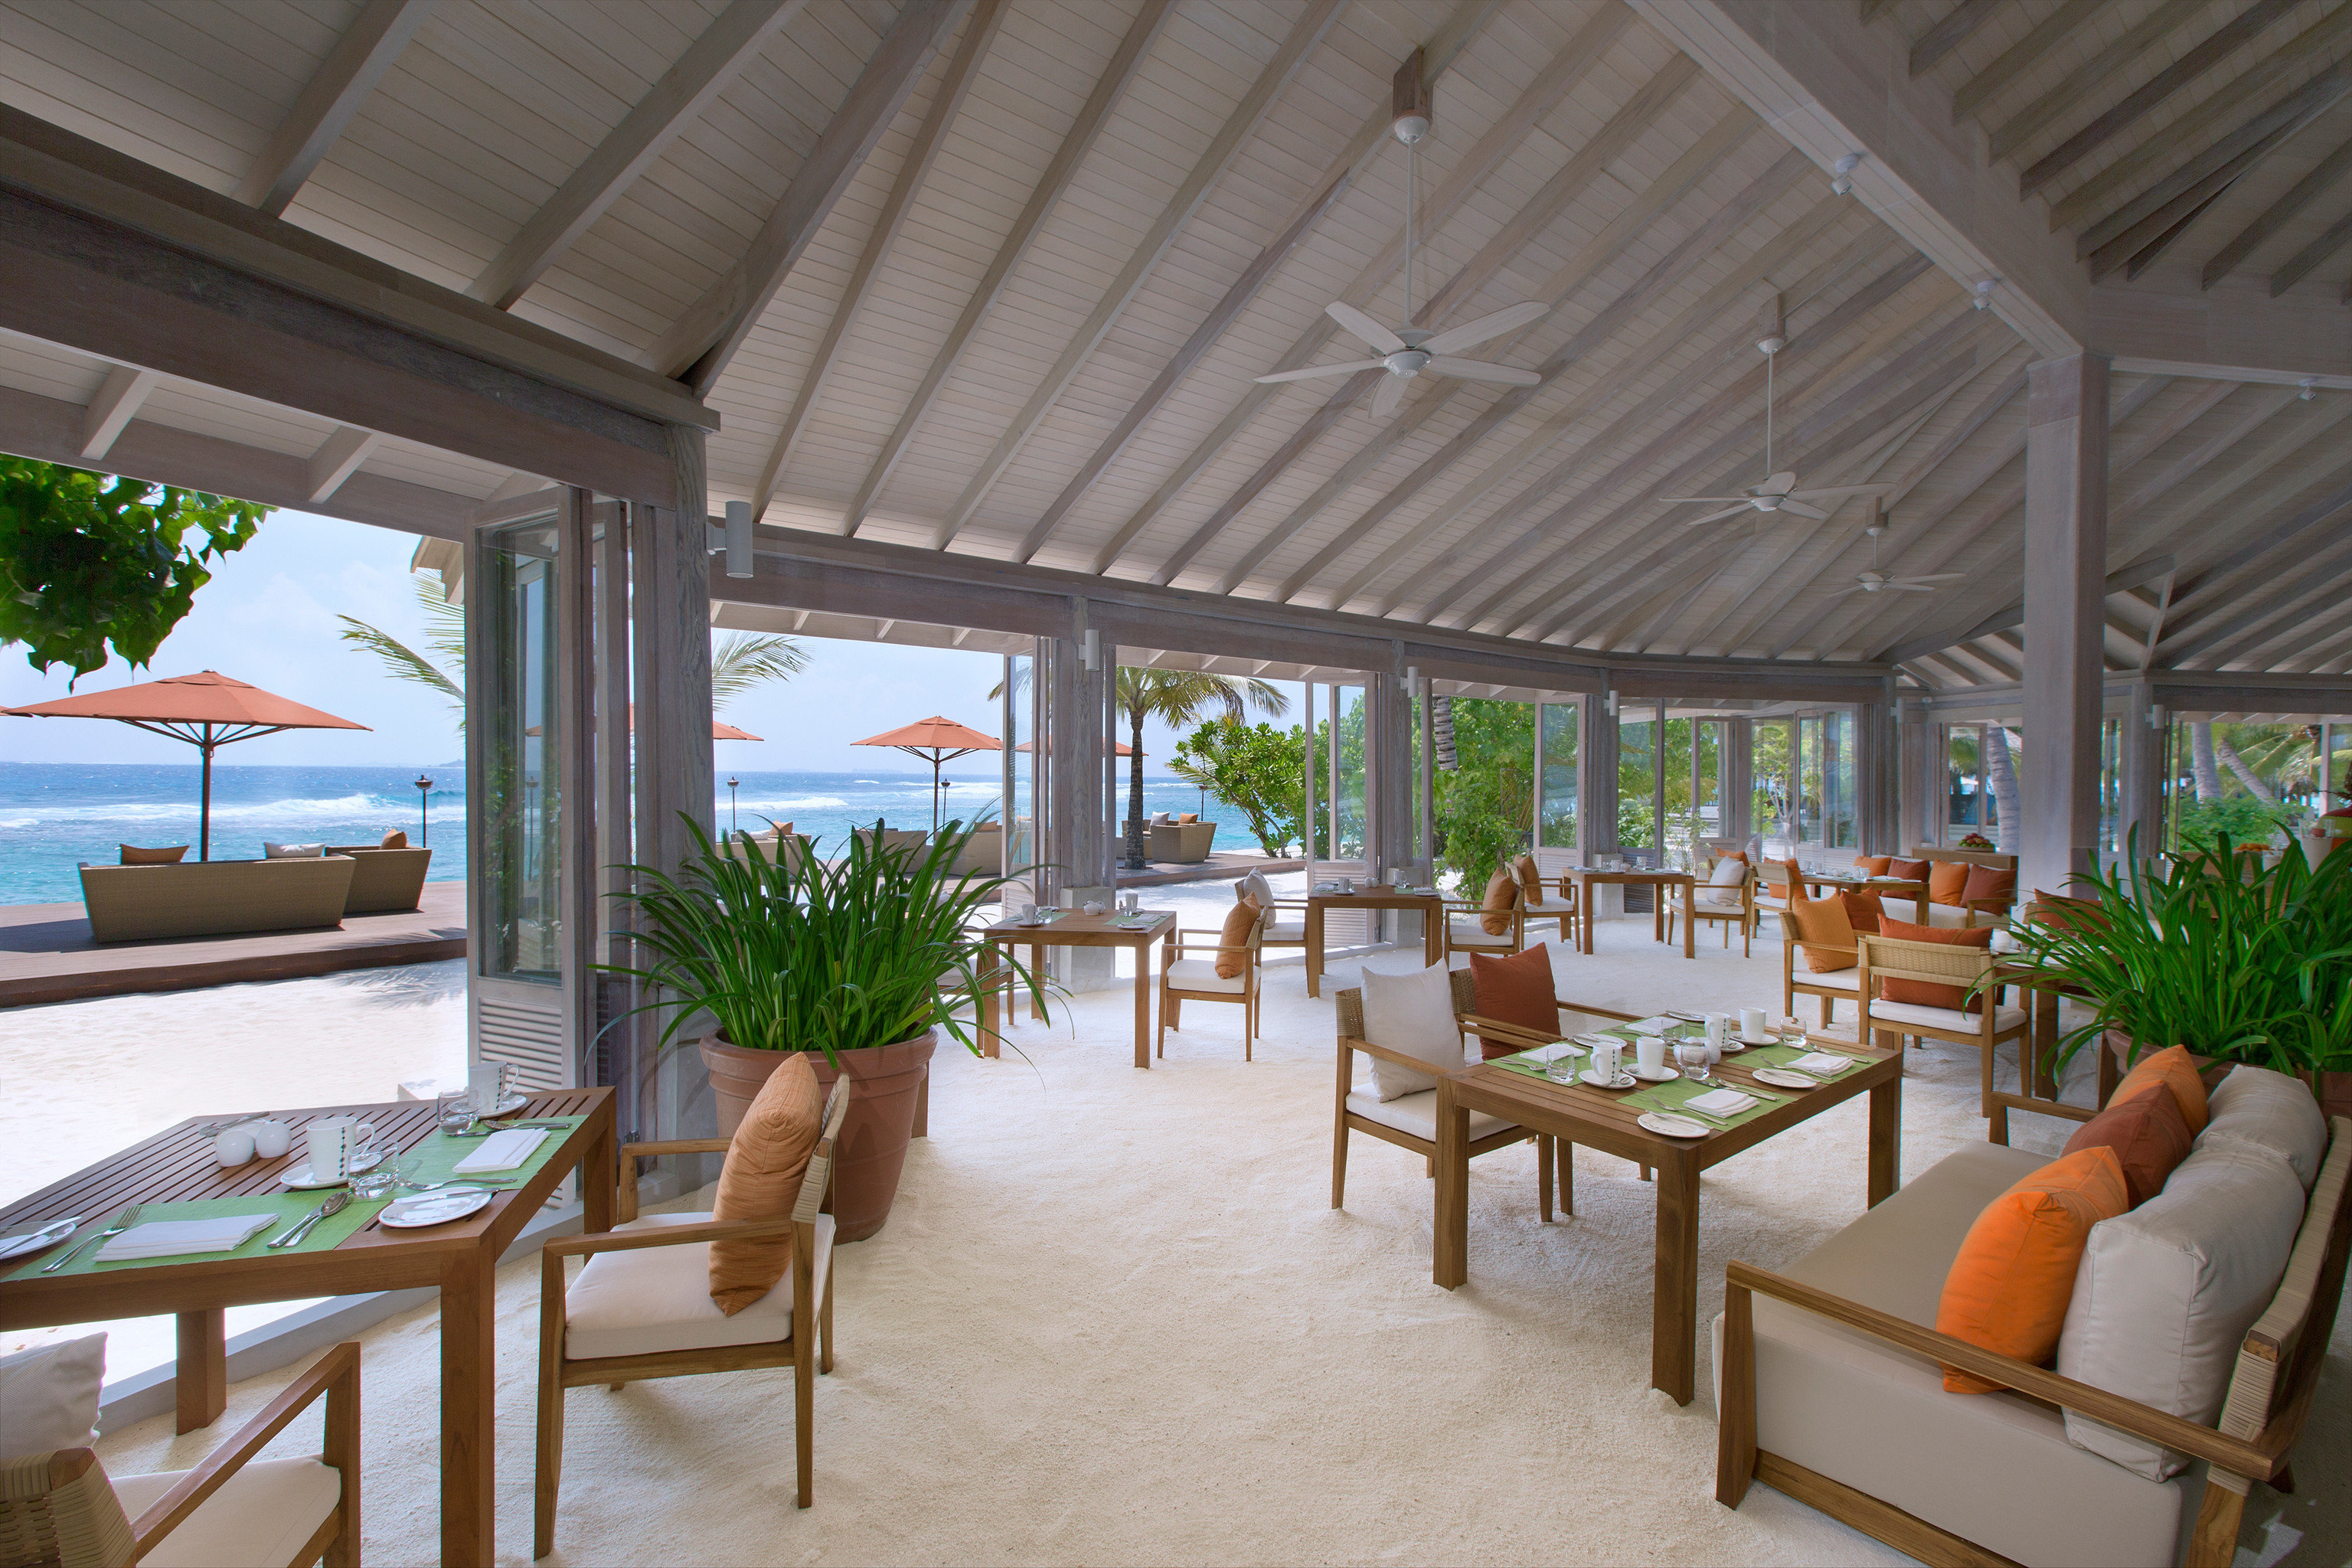 Bar Beachfront Dining Drink Eat Romantic Waterfront chair property Resort porch restaurant home Villa outdoor structure cottage Deck